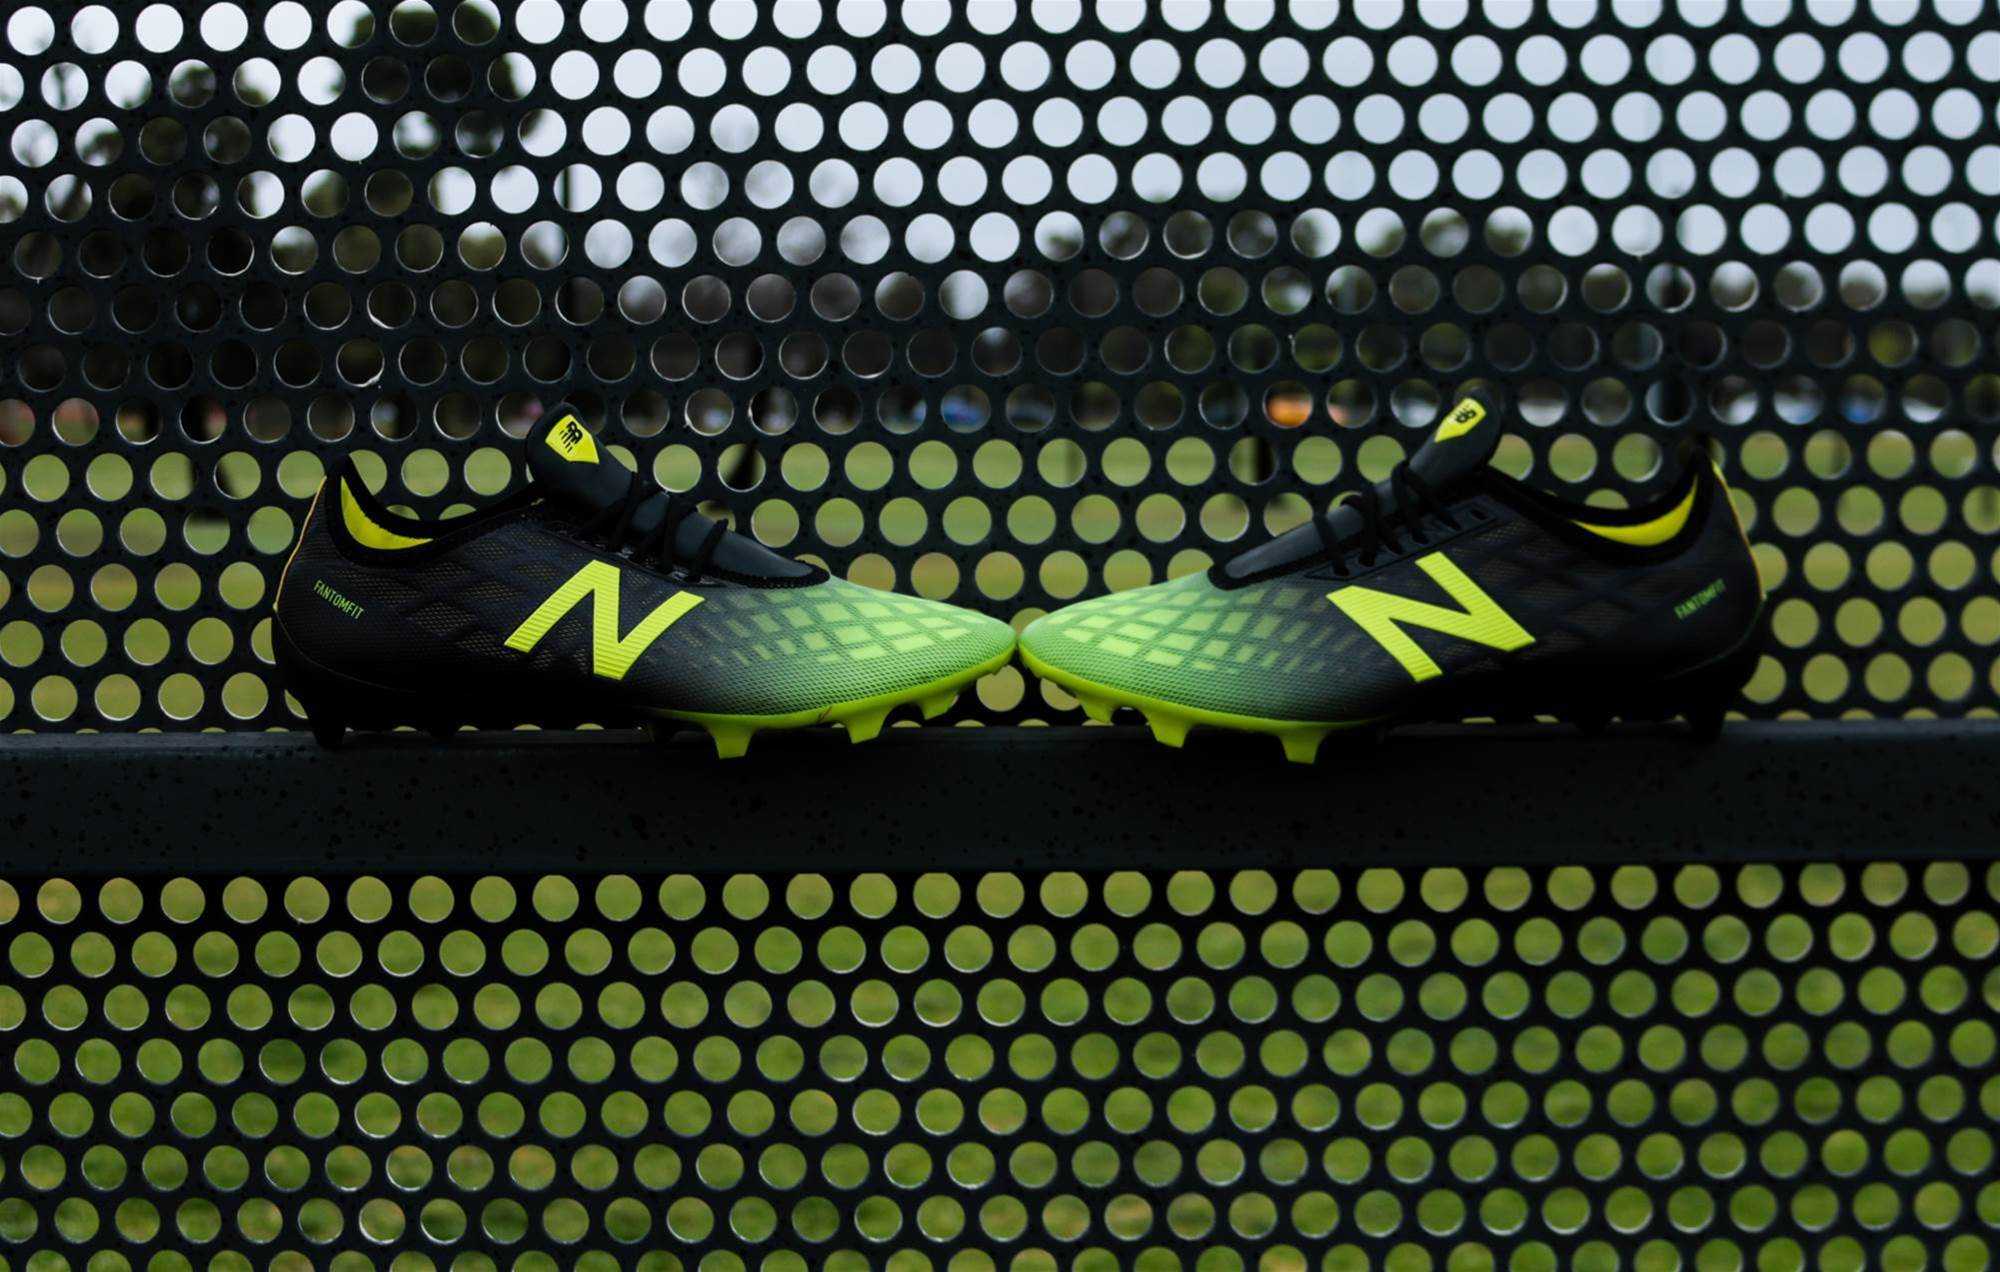 New Balance's Limited Edition Furon